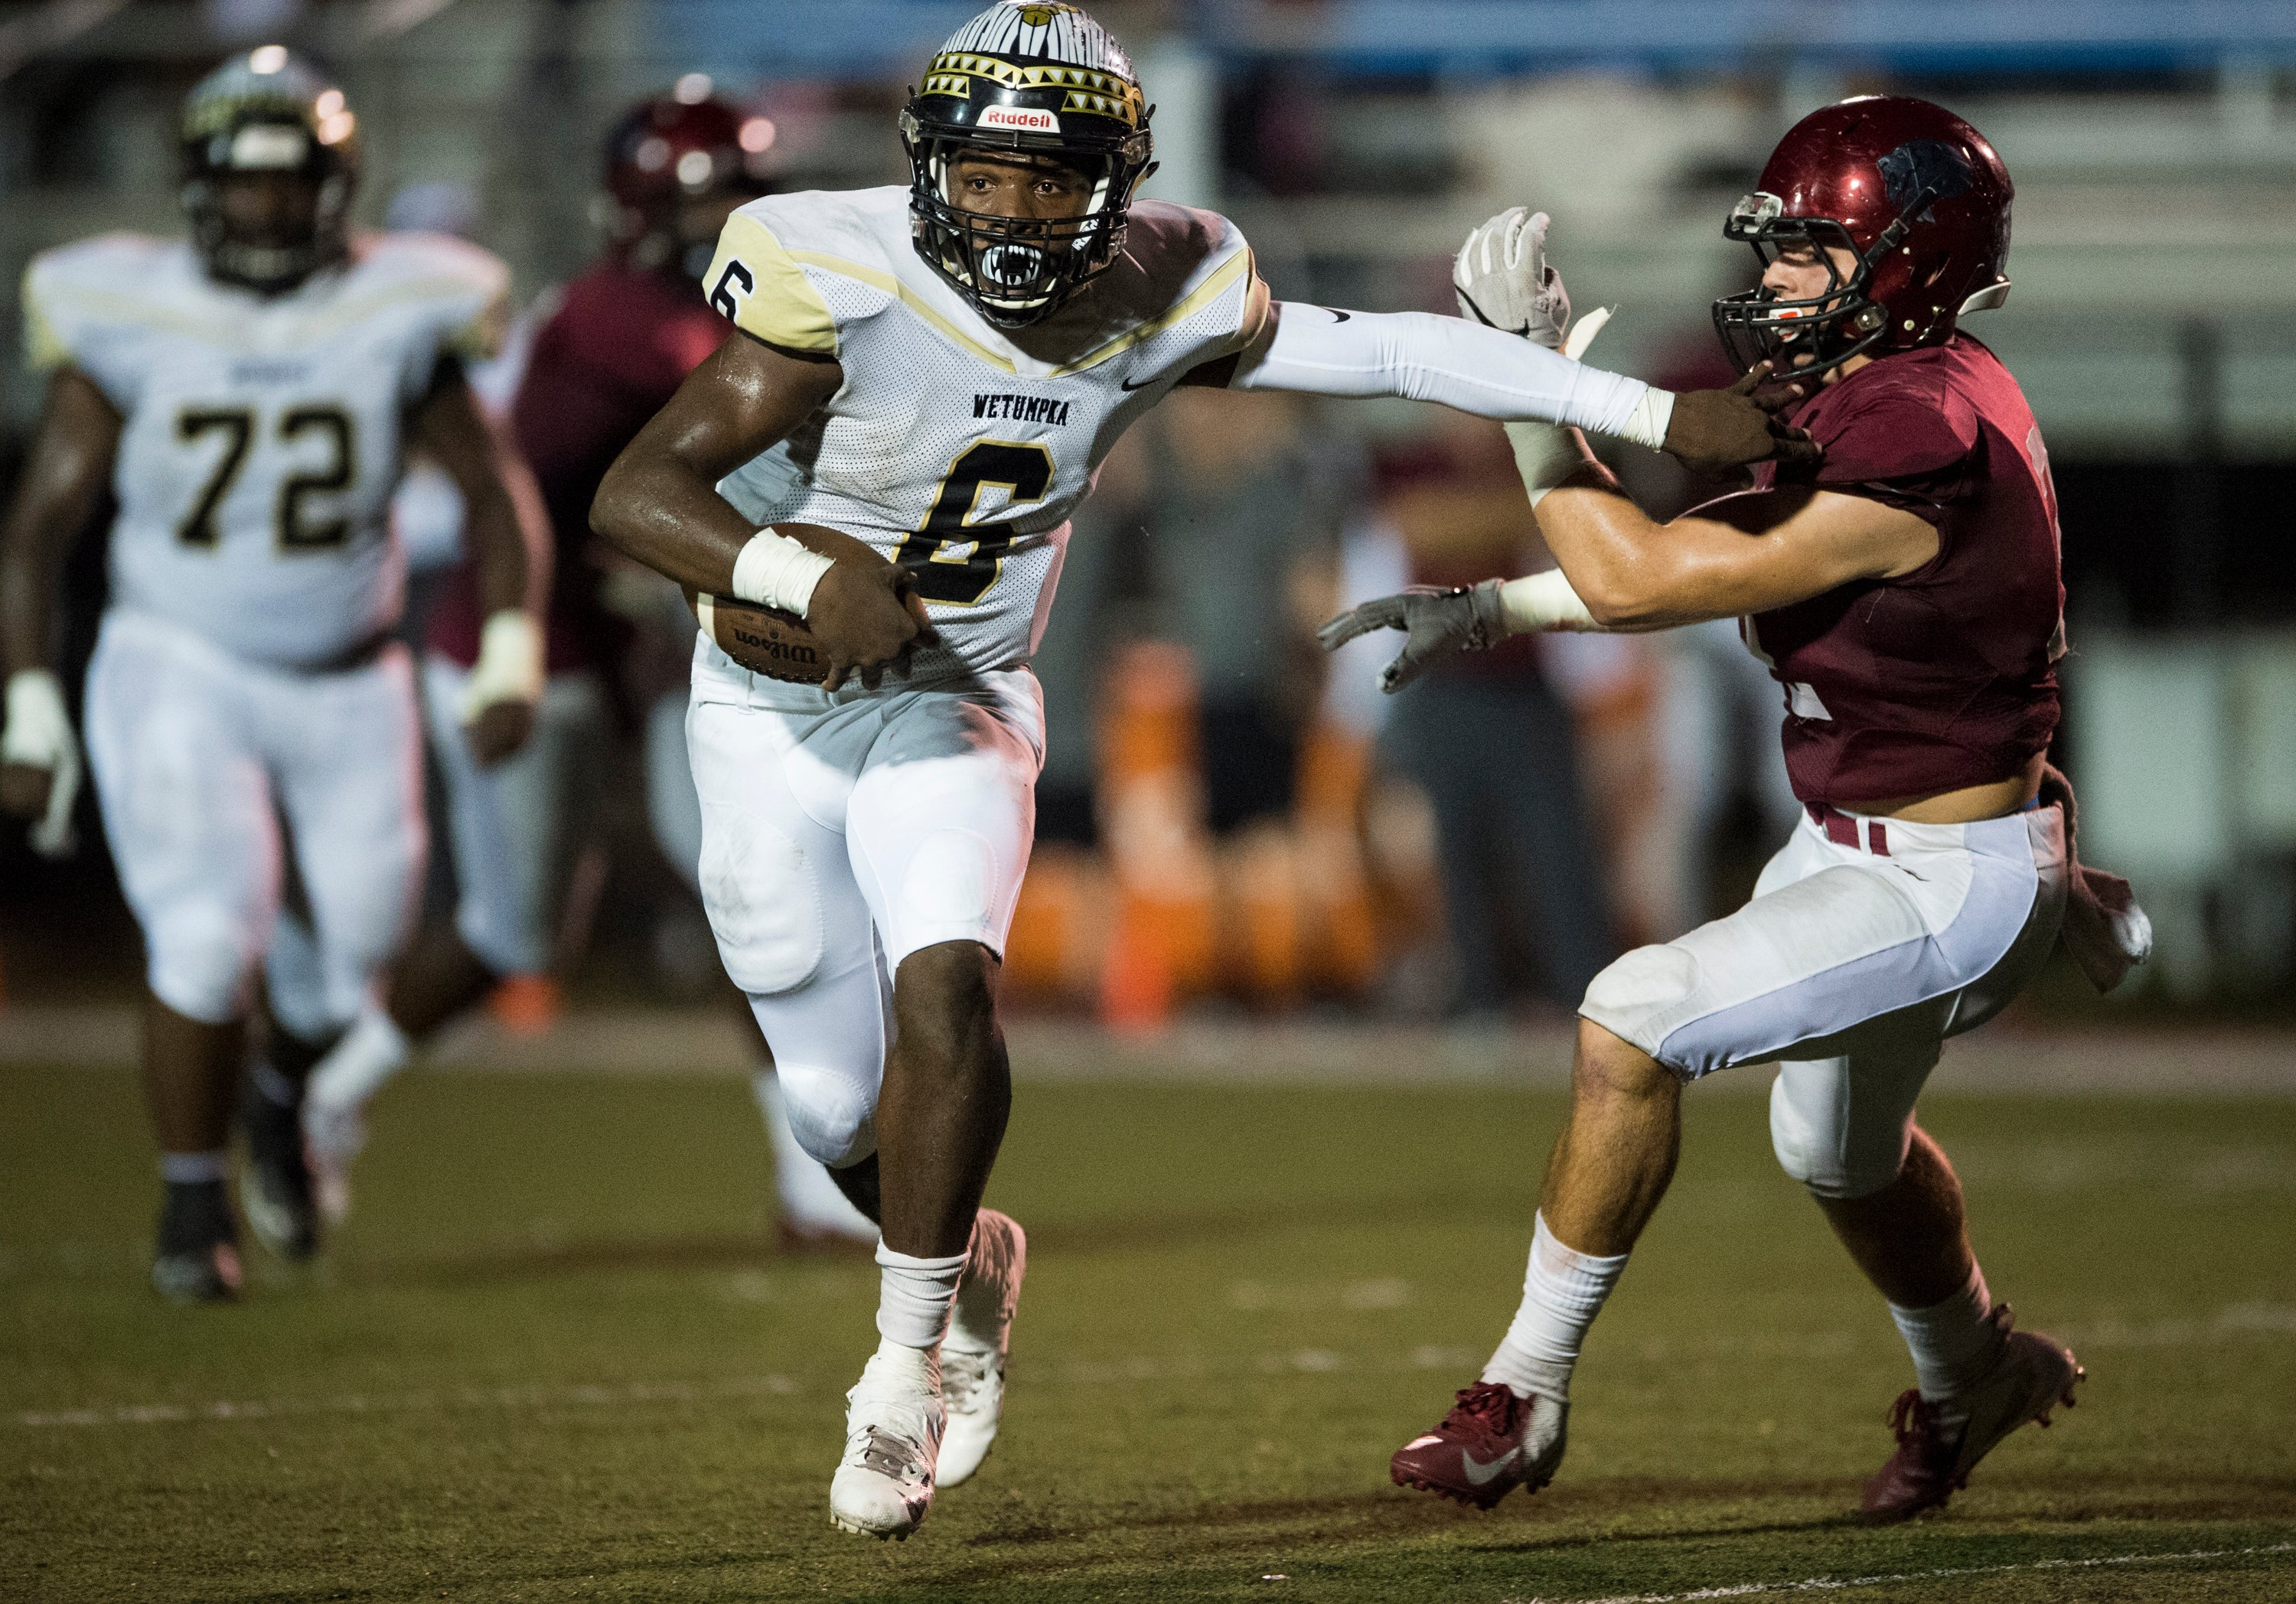 2018 Class 5a 7a All Metro Football Report News Today